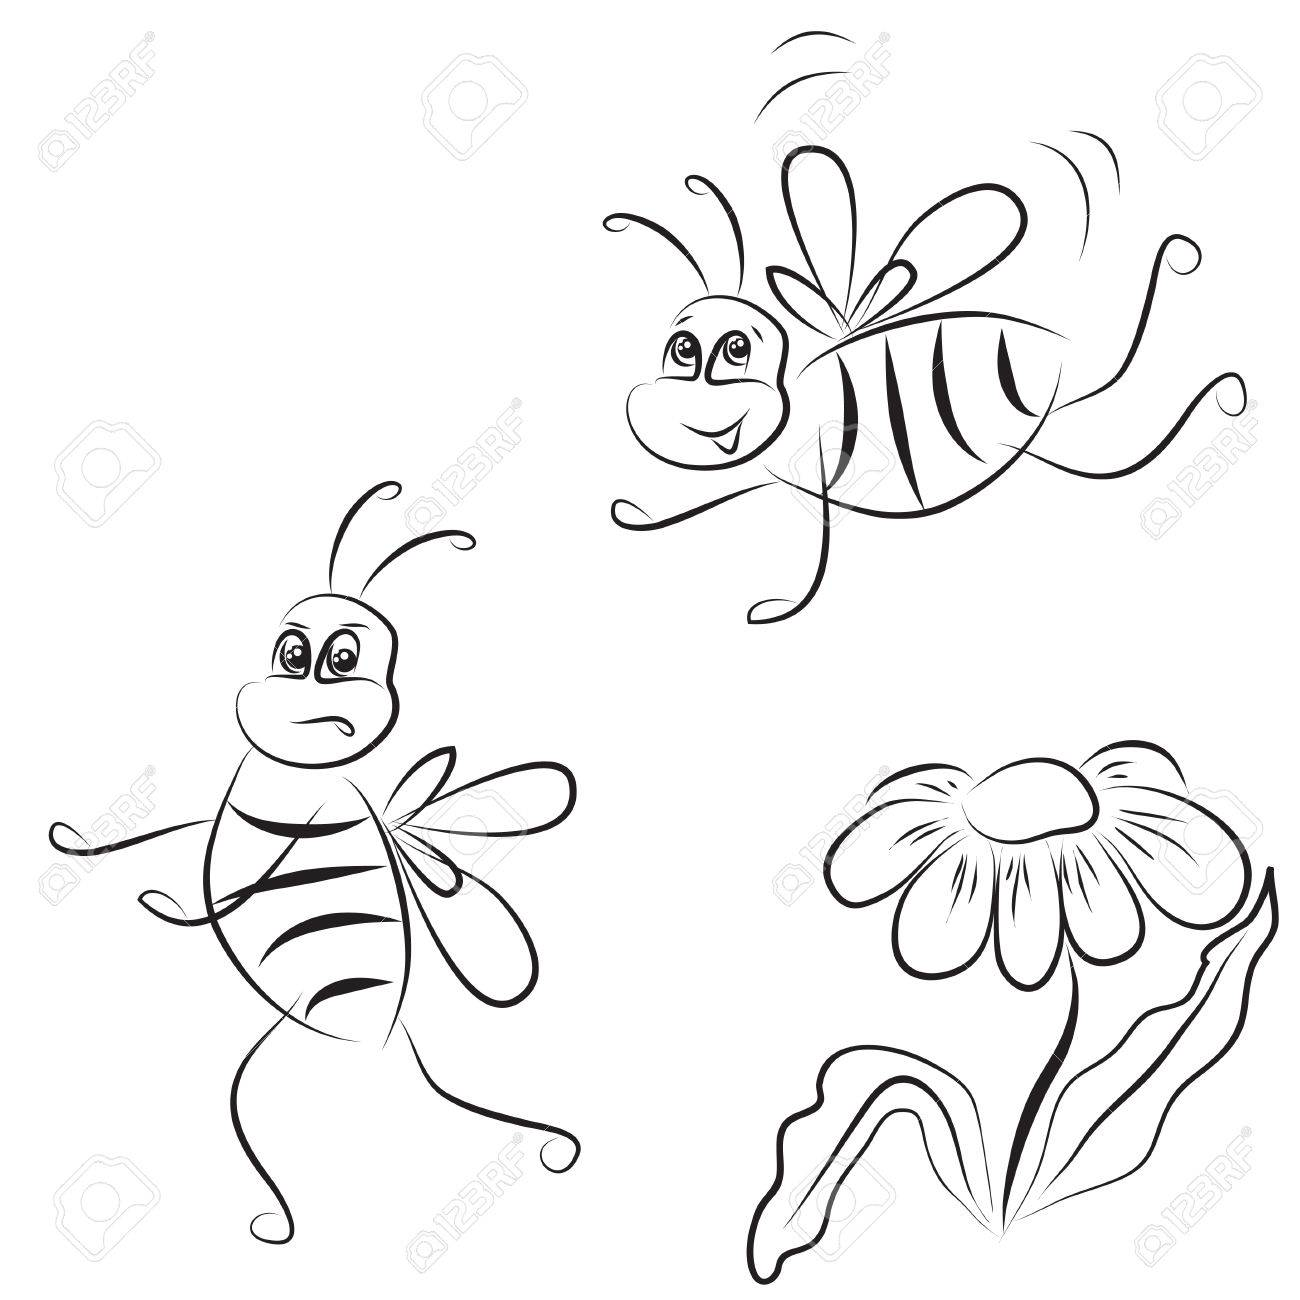 1300x1300 Simple Outline Drawing Bee And Daisy Royalty Free Cliparts